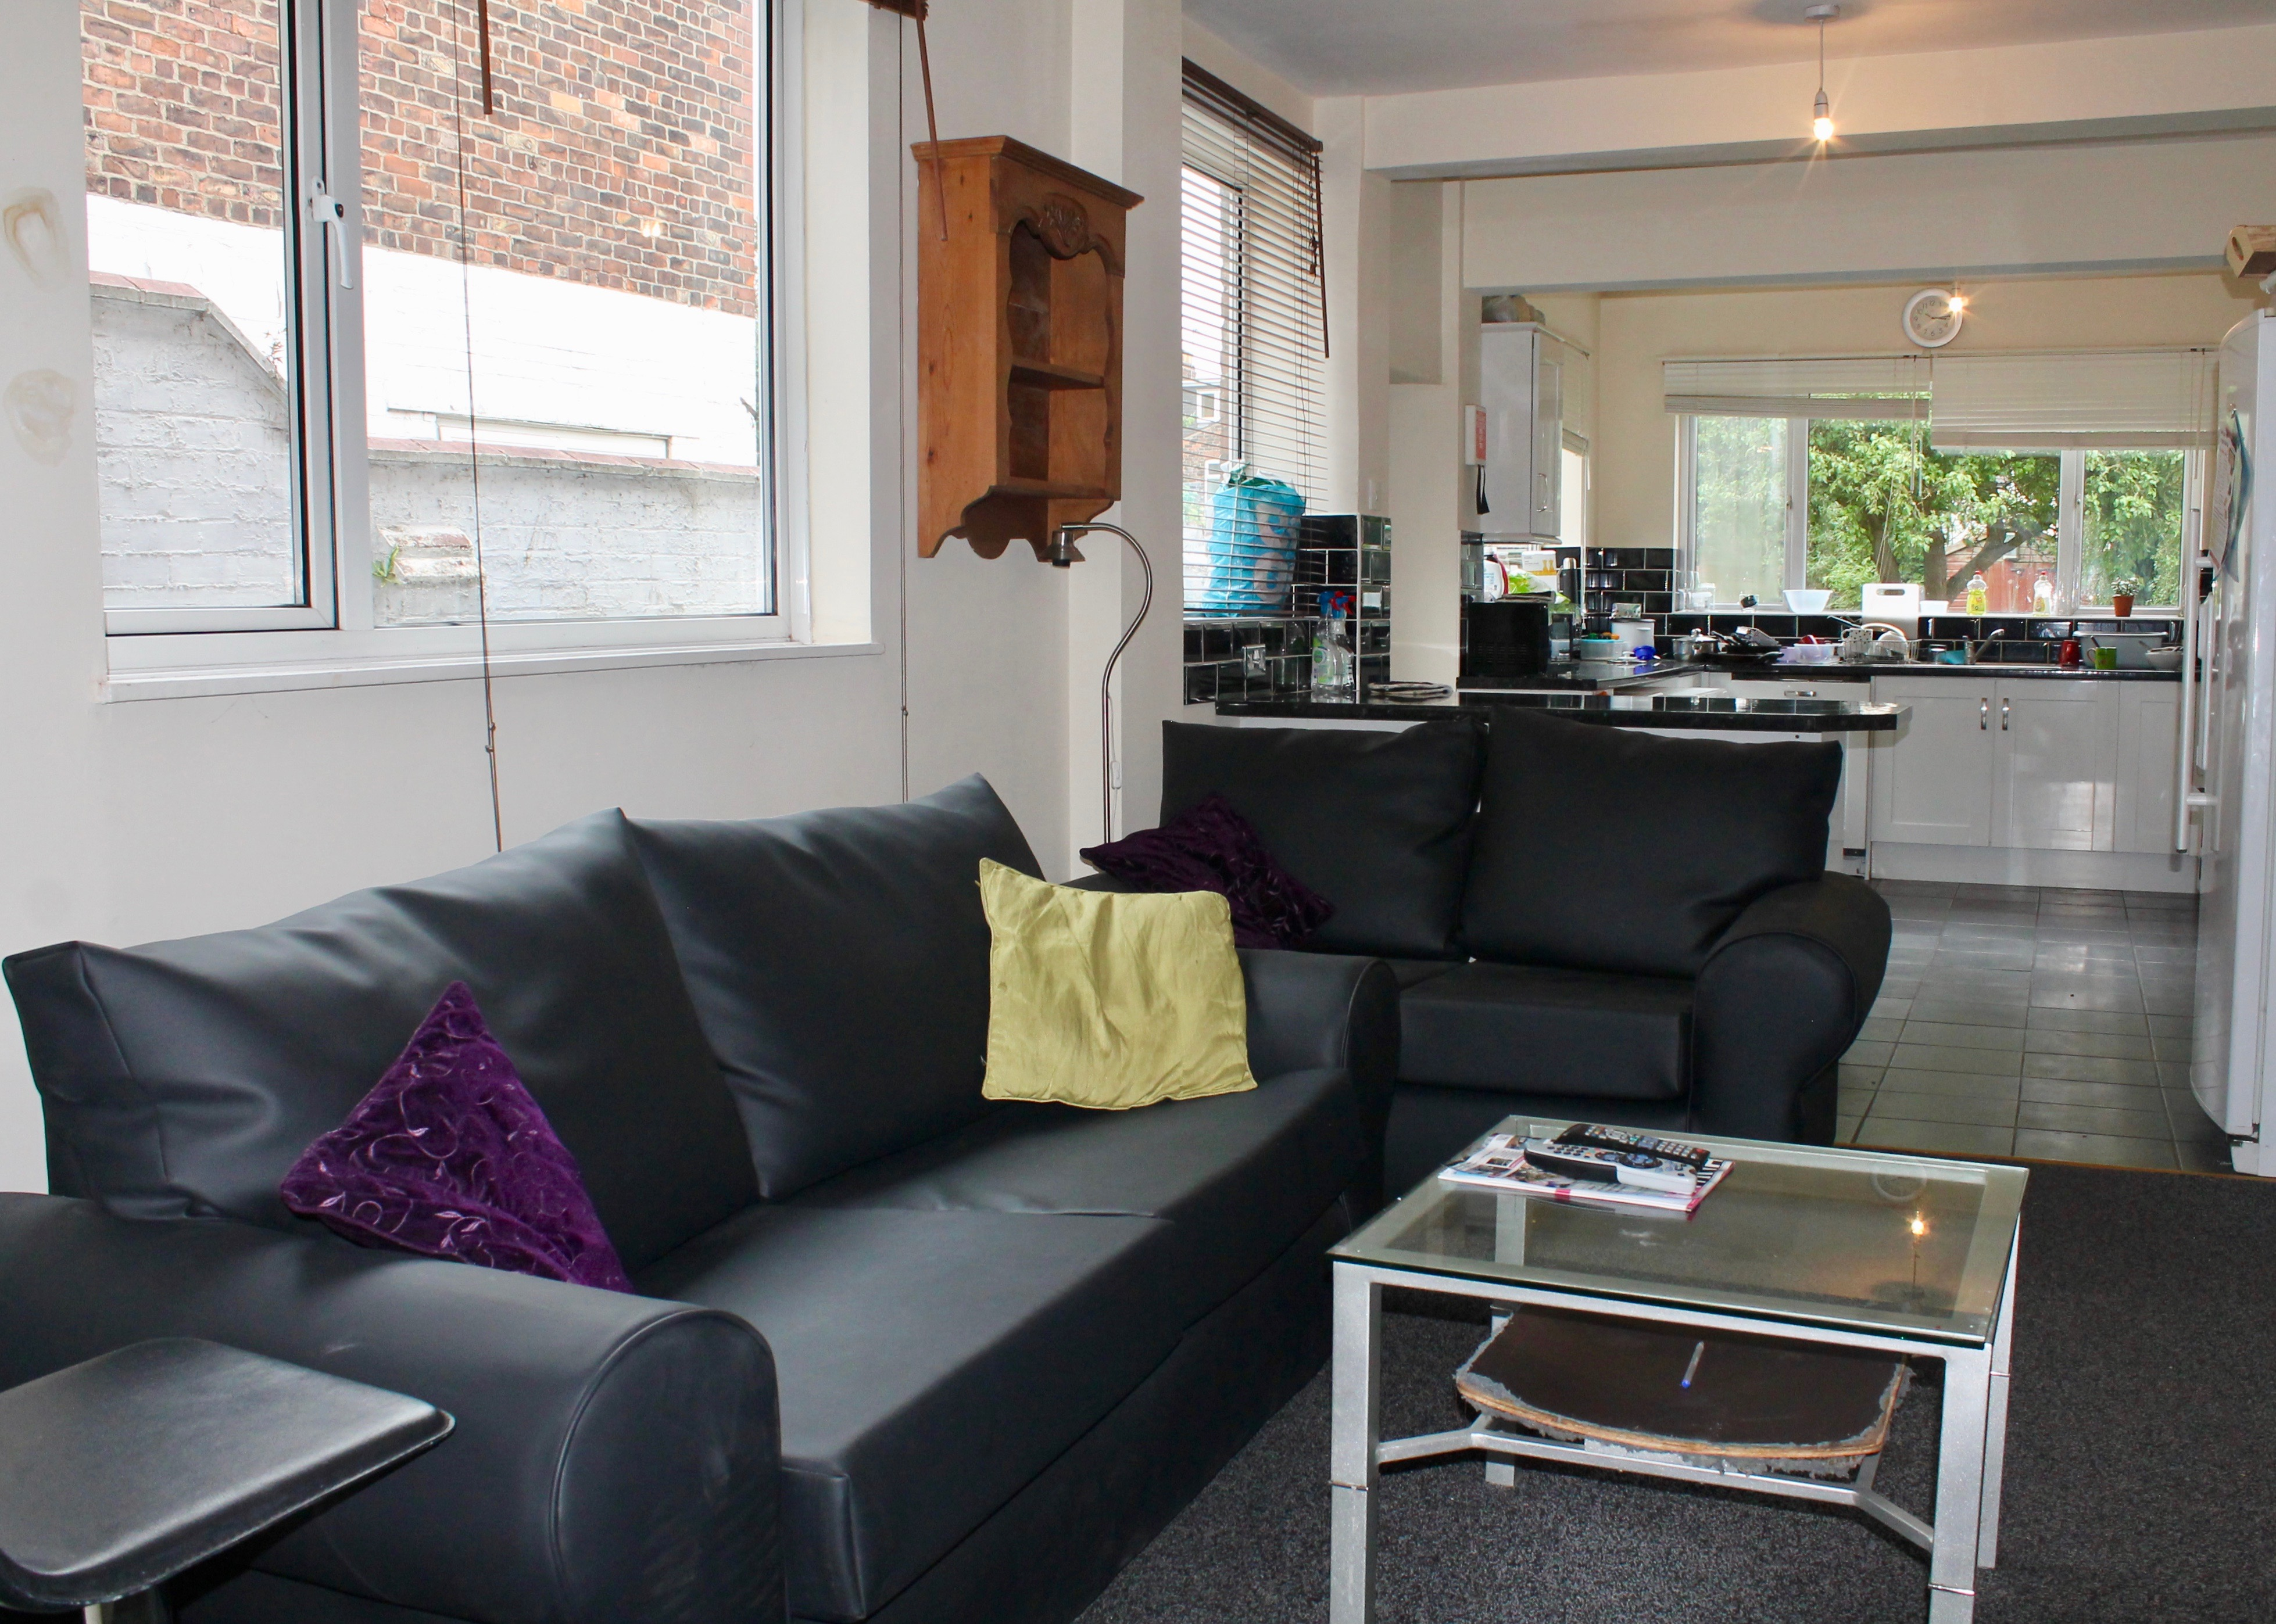 Kitchen, living area with sofa, tv and sky box